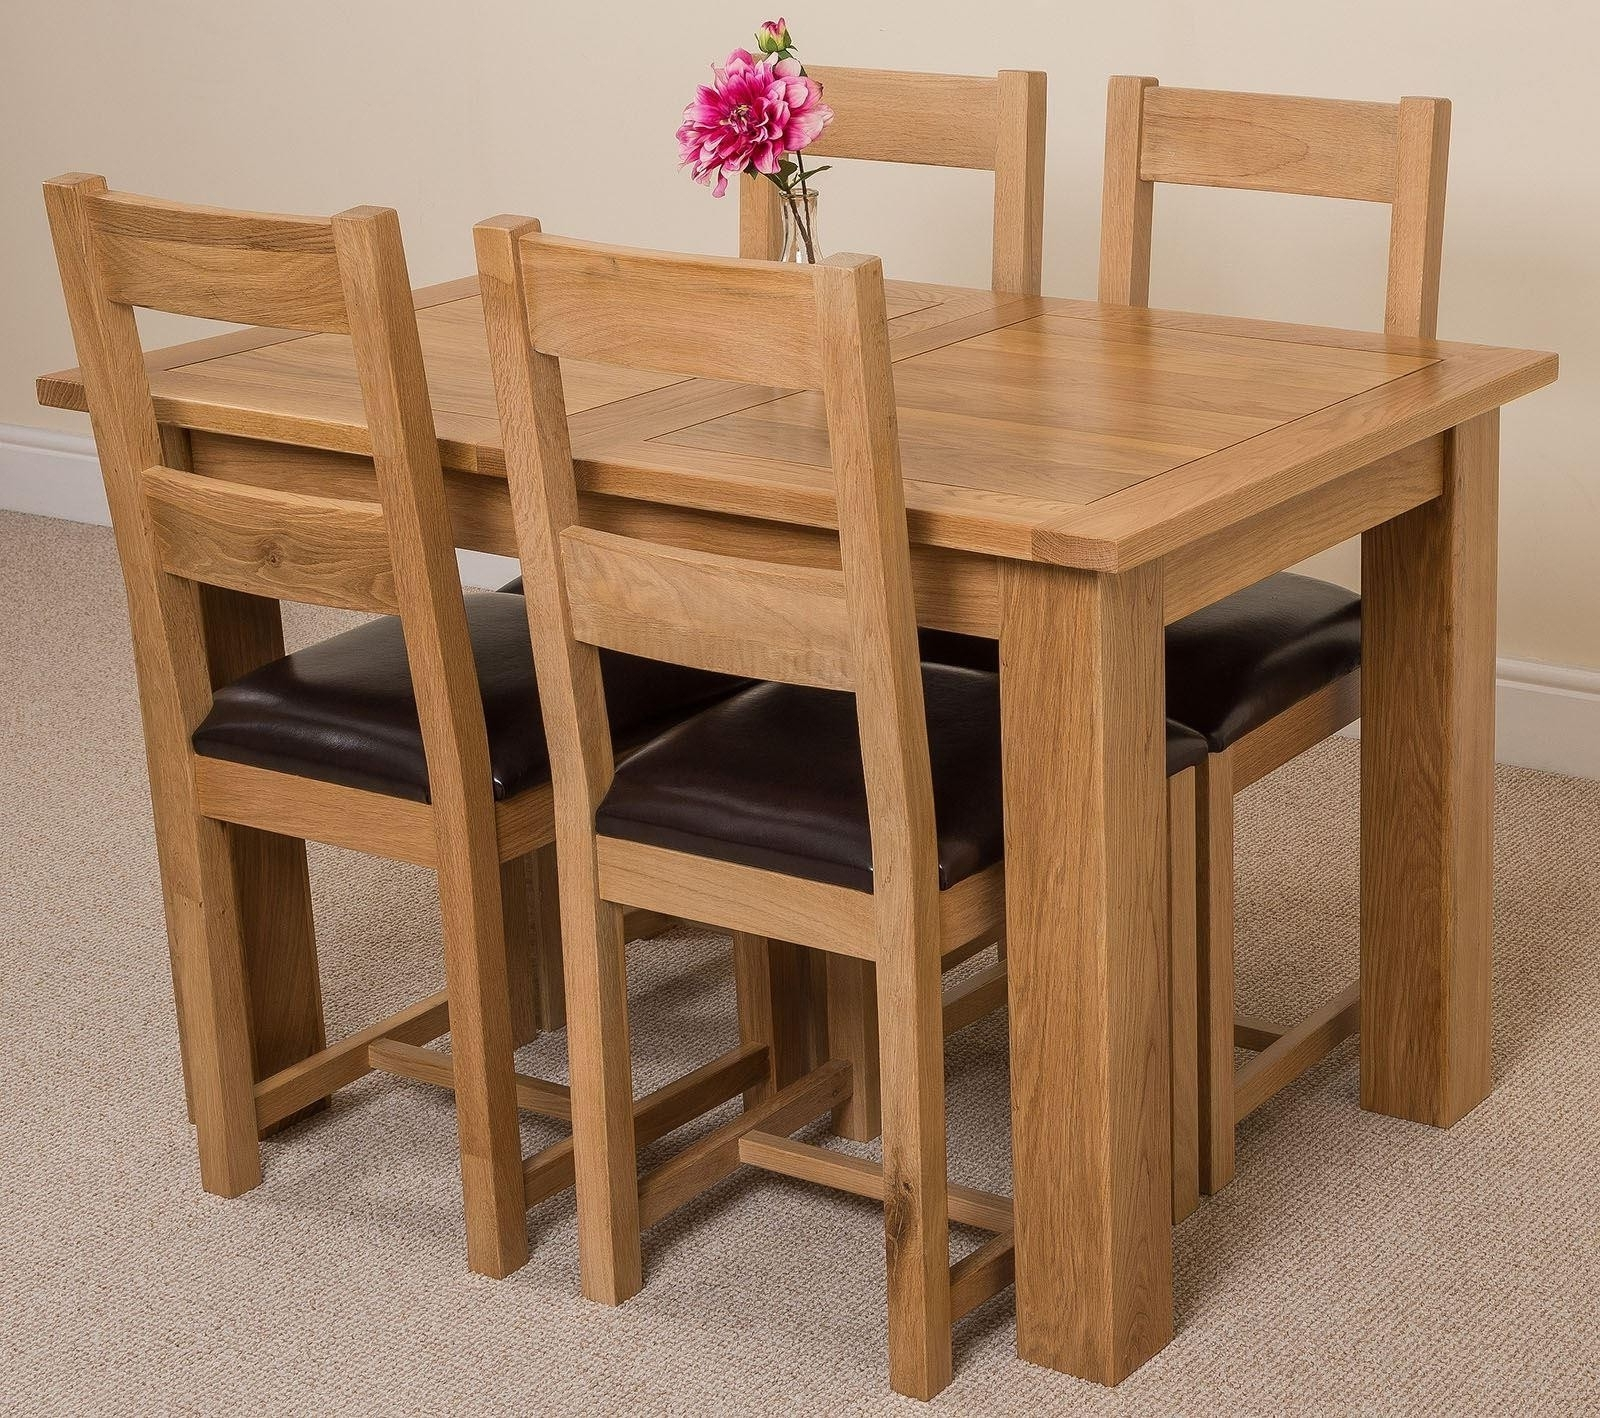 Oak Furniture King Regarding Extending Oak Dining Tables And Chairs (View 17 of 25)